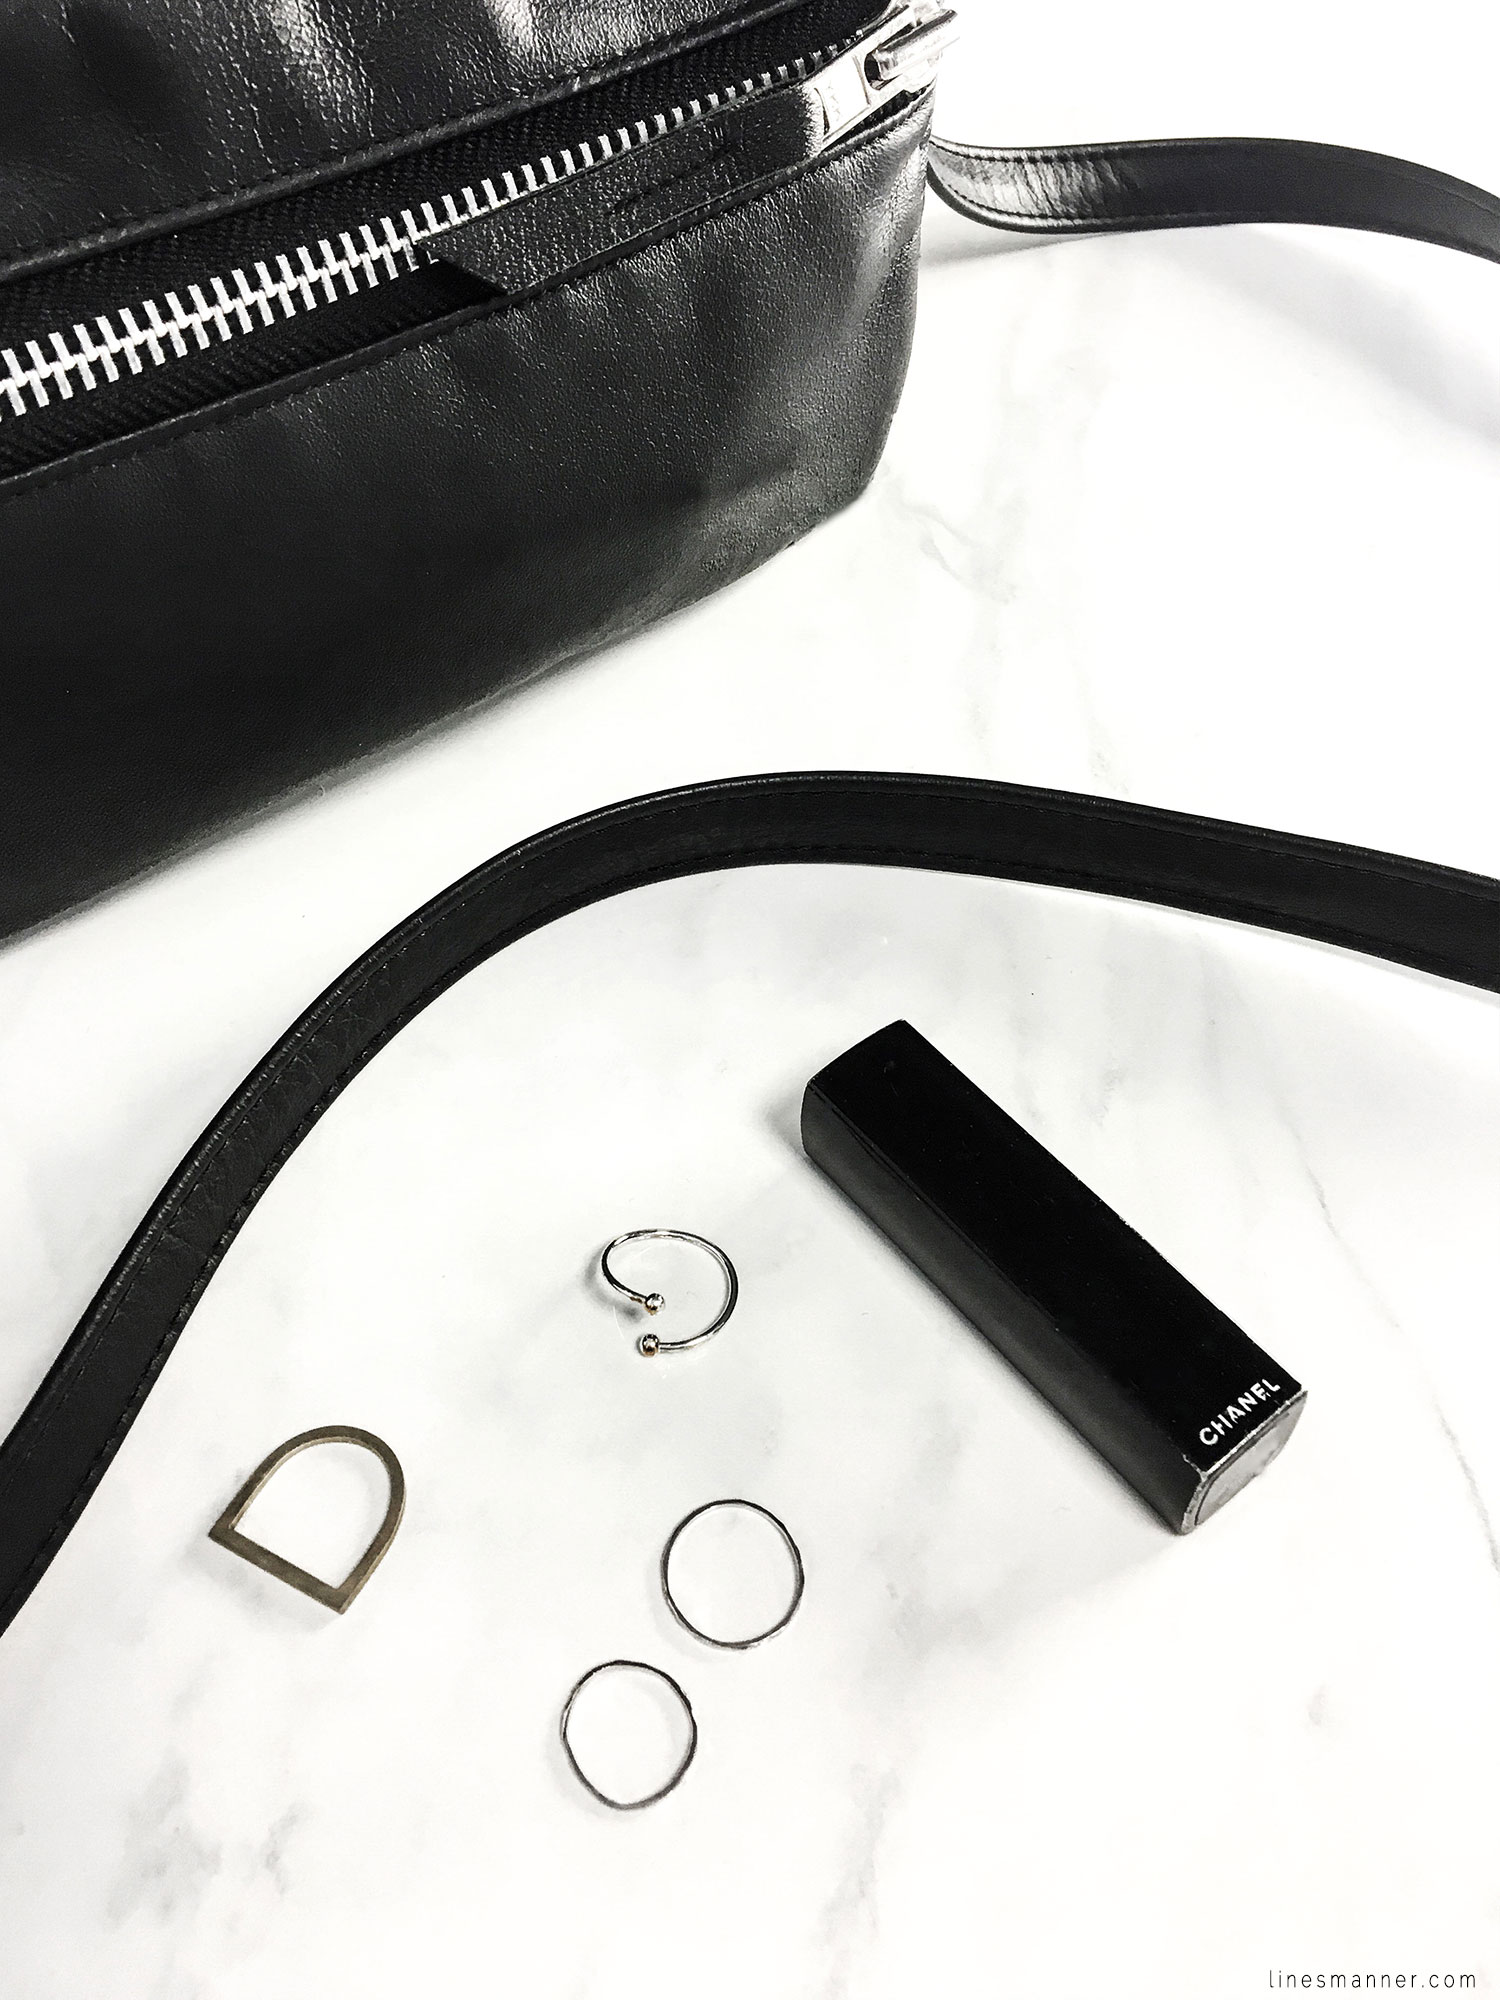 Lines-Manner-Flatlay-Monochrome-Essentials-Details-Jewellery-Hardware-Morning_routine-Black_and_white-White-Minimal-Impact-Classics-Timeless-Simplicity-3